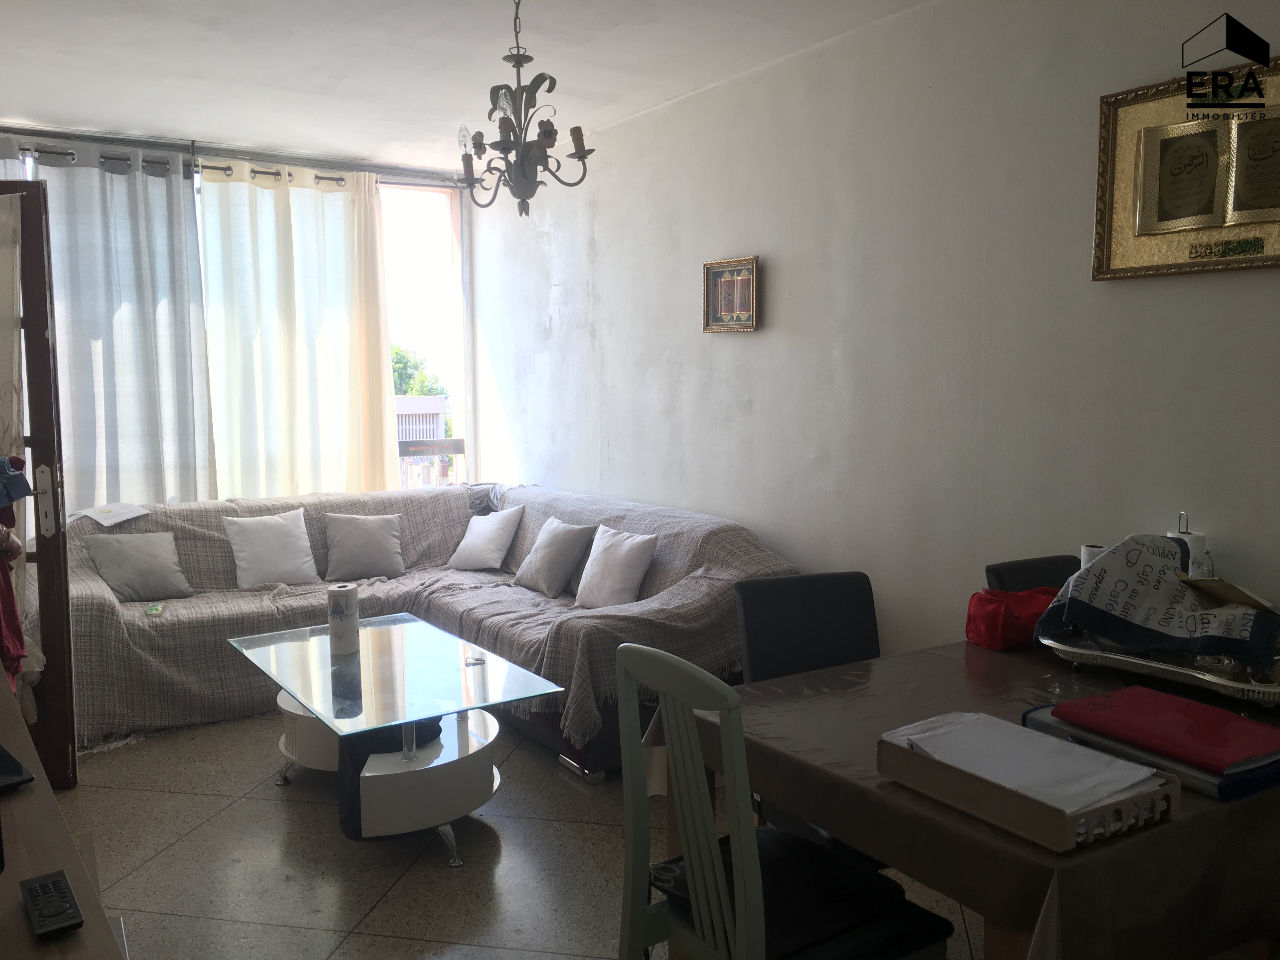 A VENDRE APPARTEMENT MARSEILLE 13015 SAINT JOSEPH TYPE 4 GARAGE